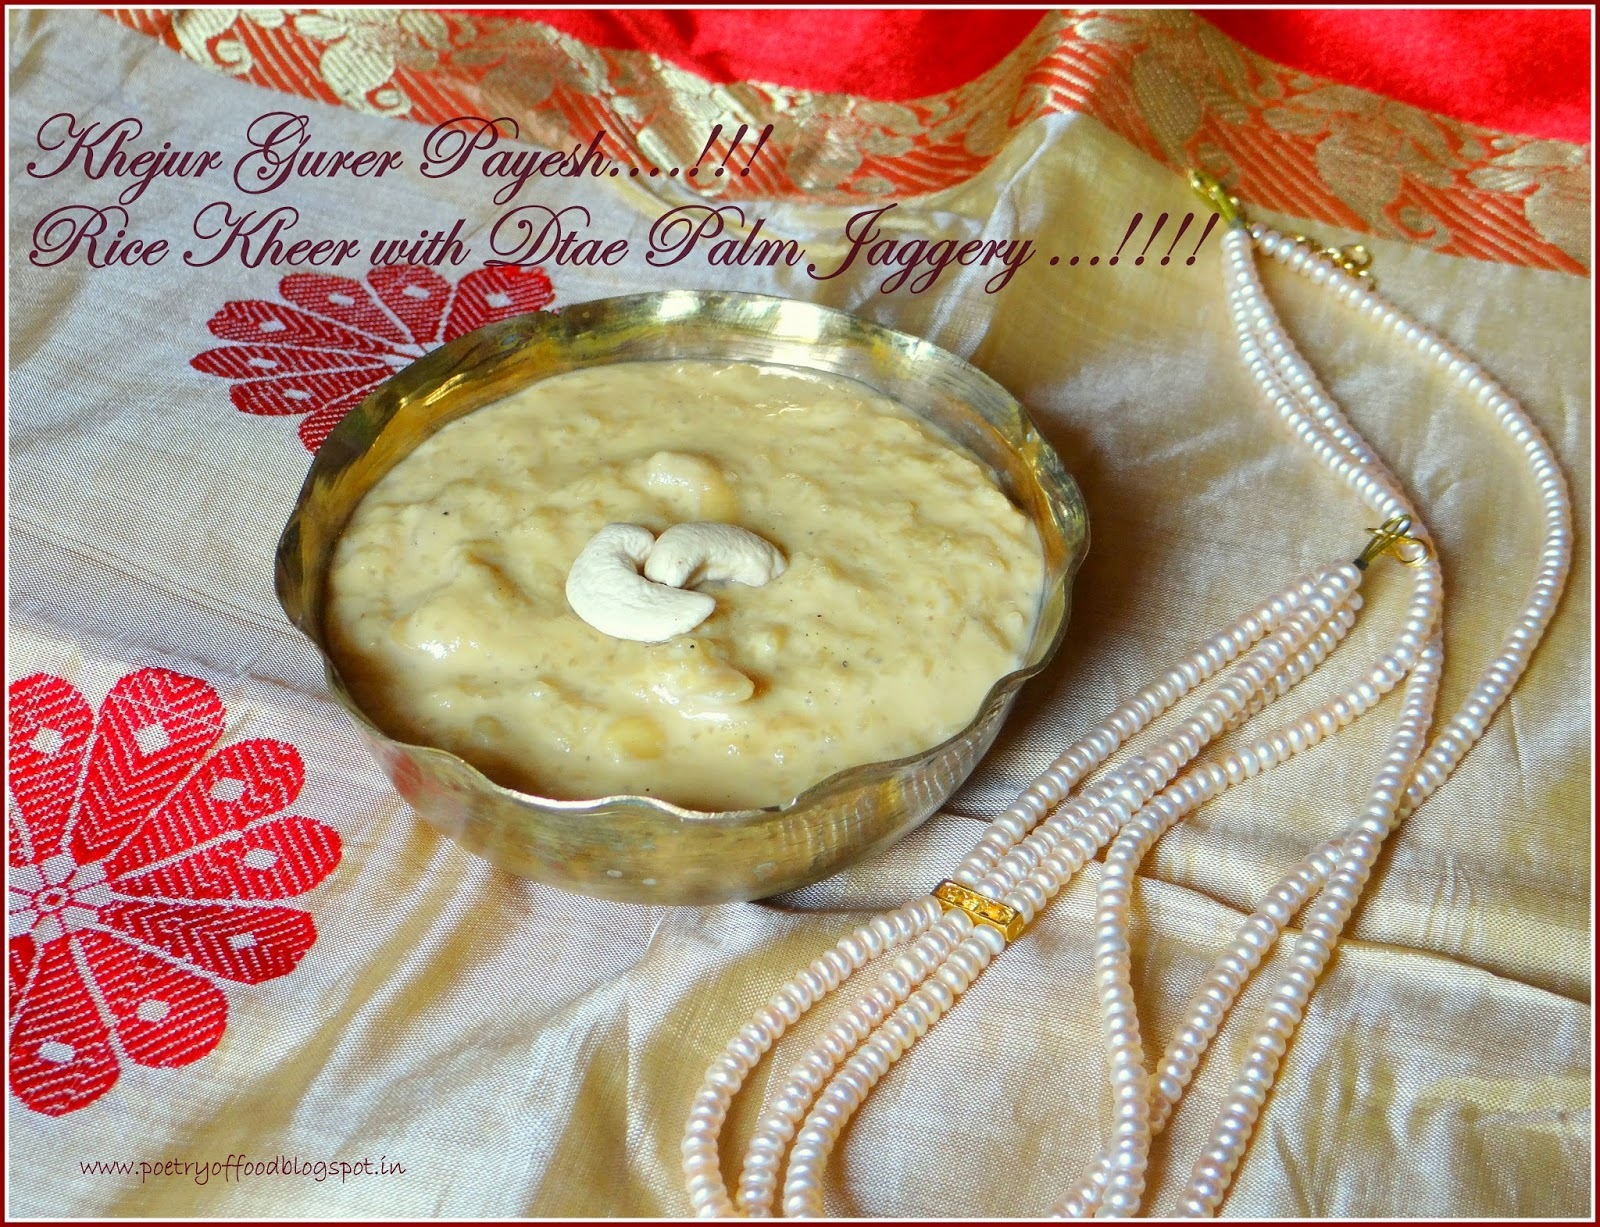 Nolen Gurer Payesh...Rice Kheer With Date Palm Jaggery...!!!!